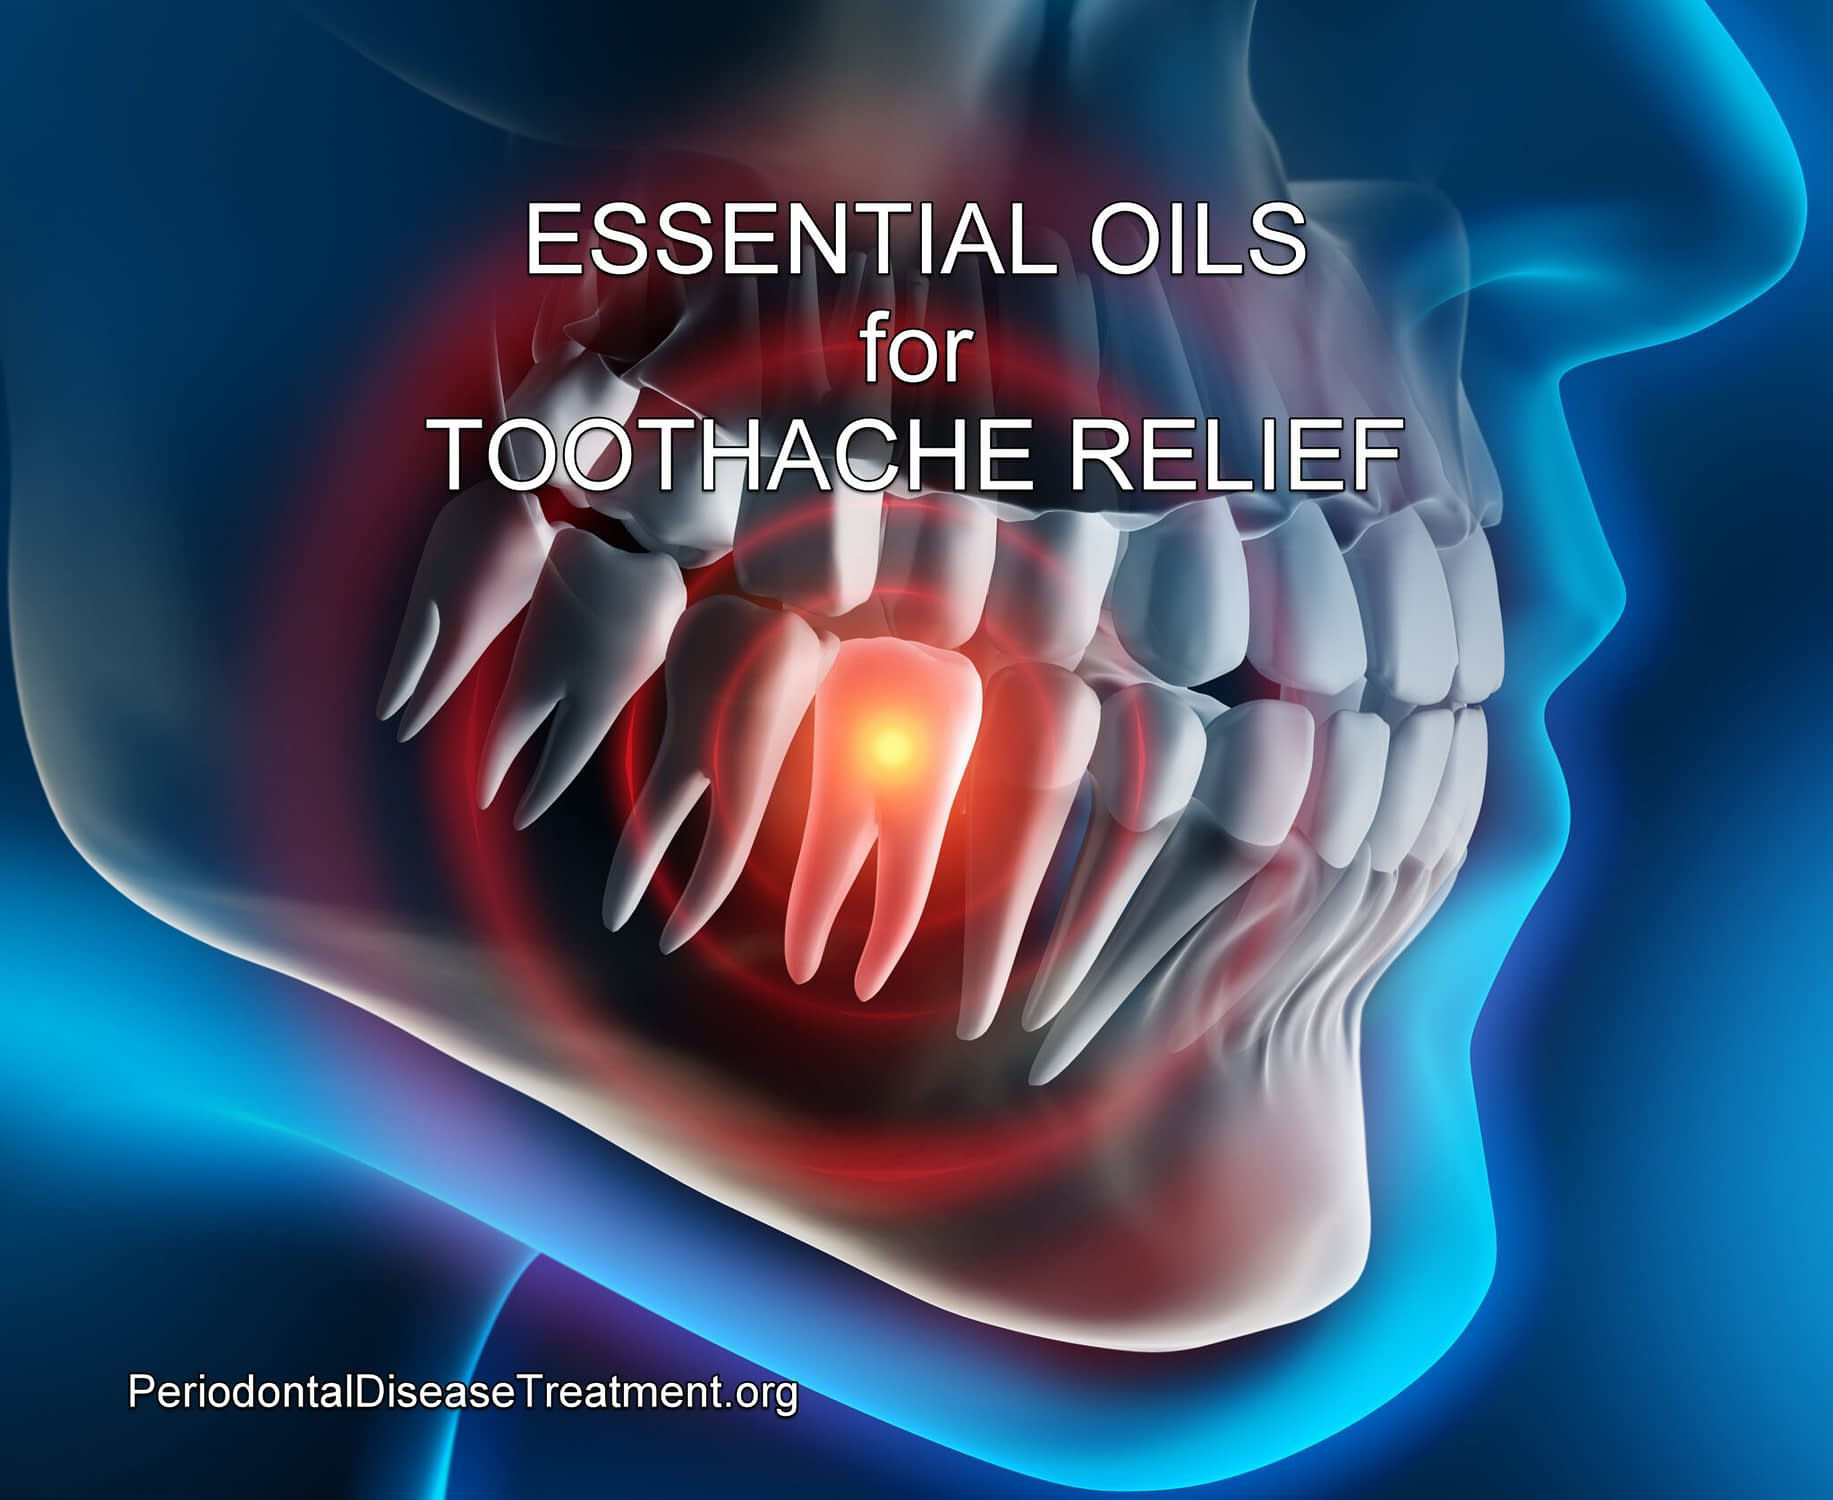 10 Best Essential Oils for Toothache Pain Relief – A Guide